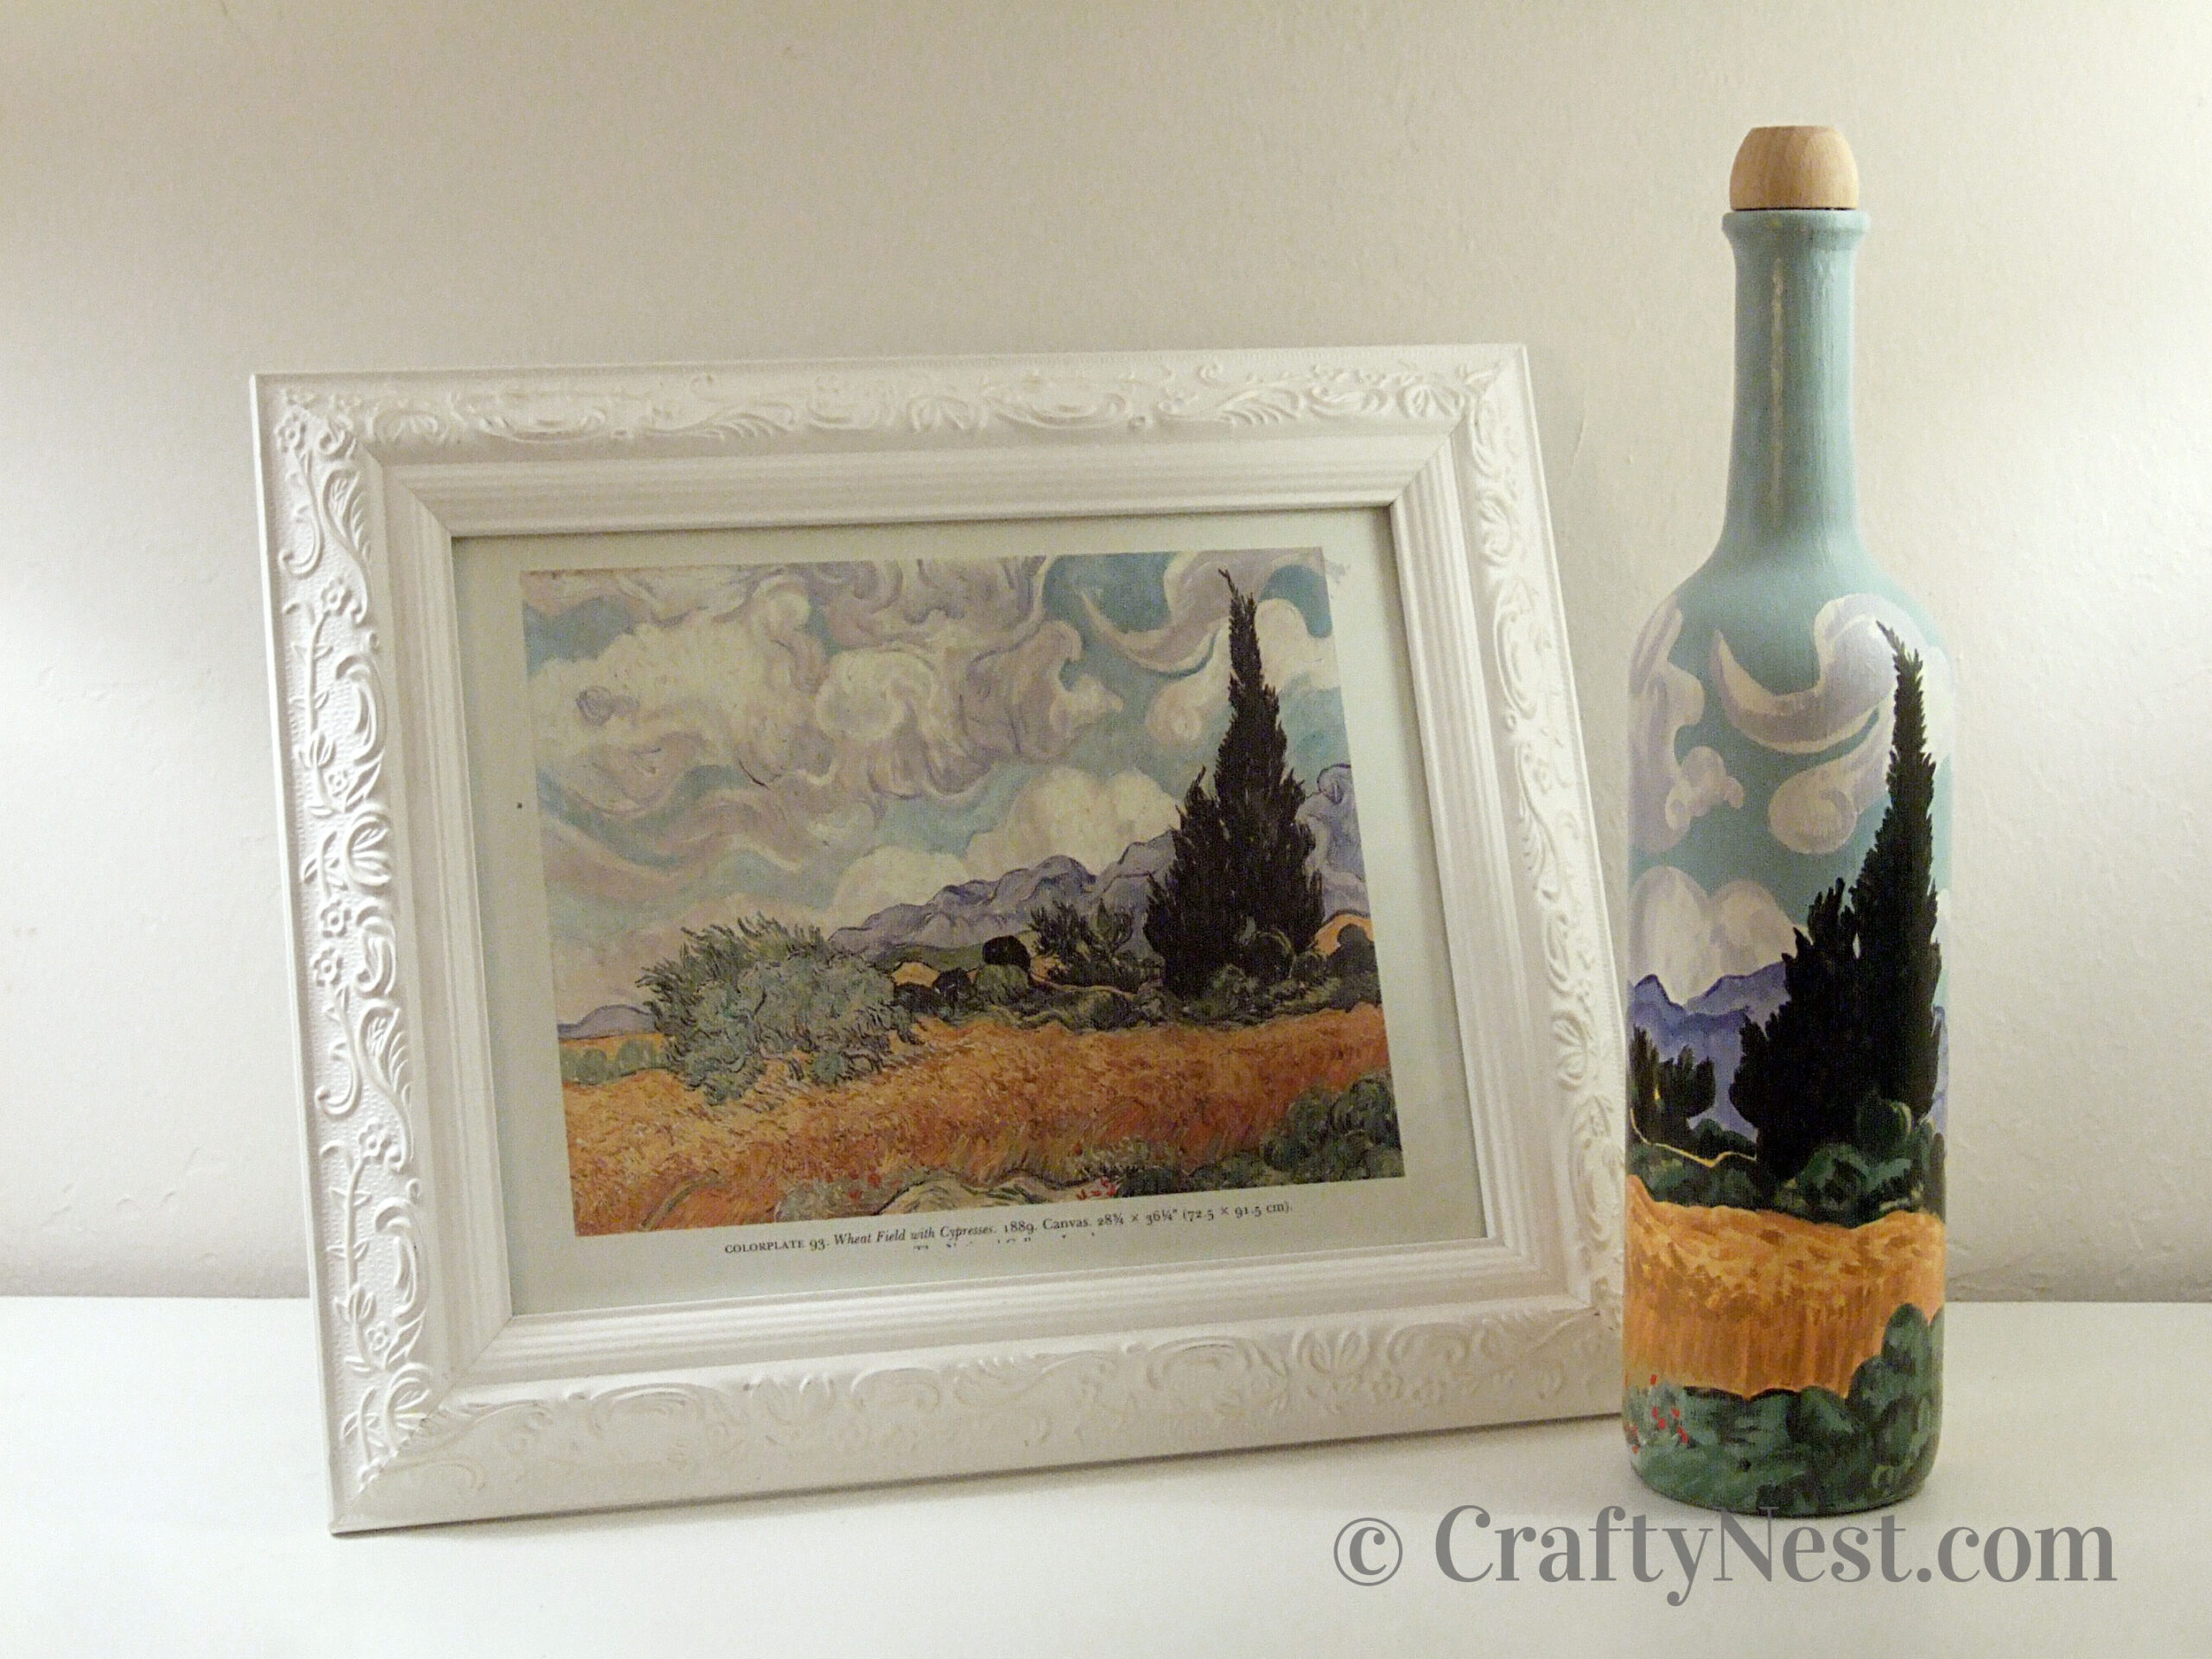 Van Gogh painted on a wine bottle, photo